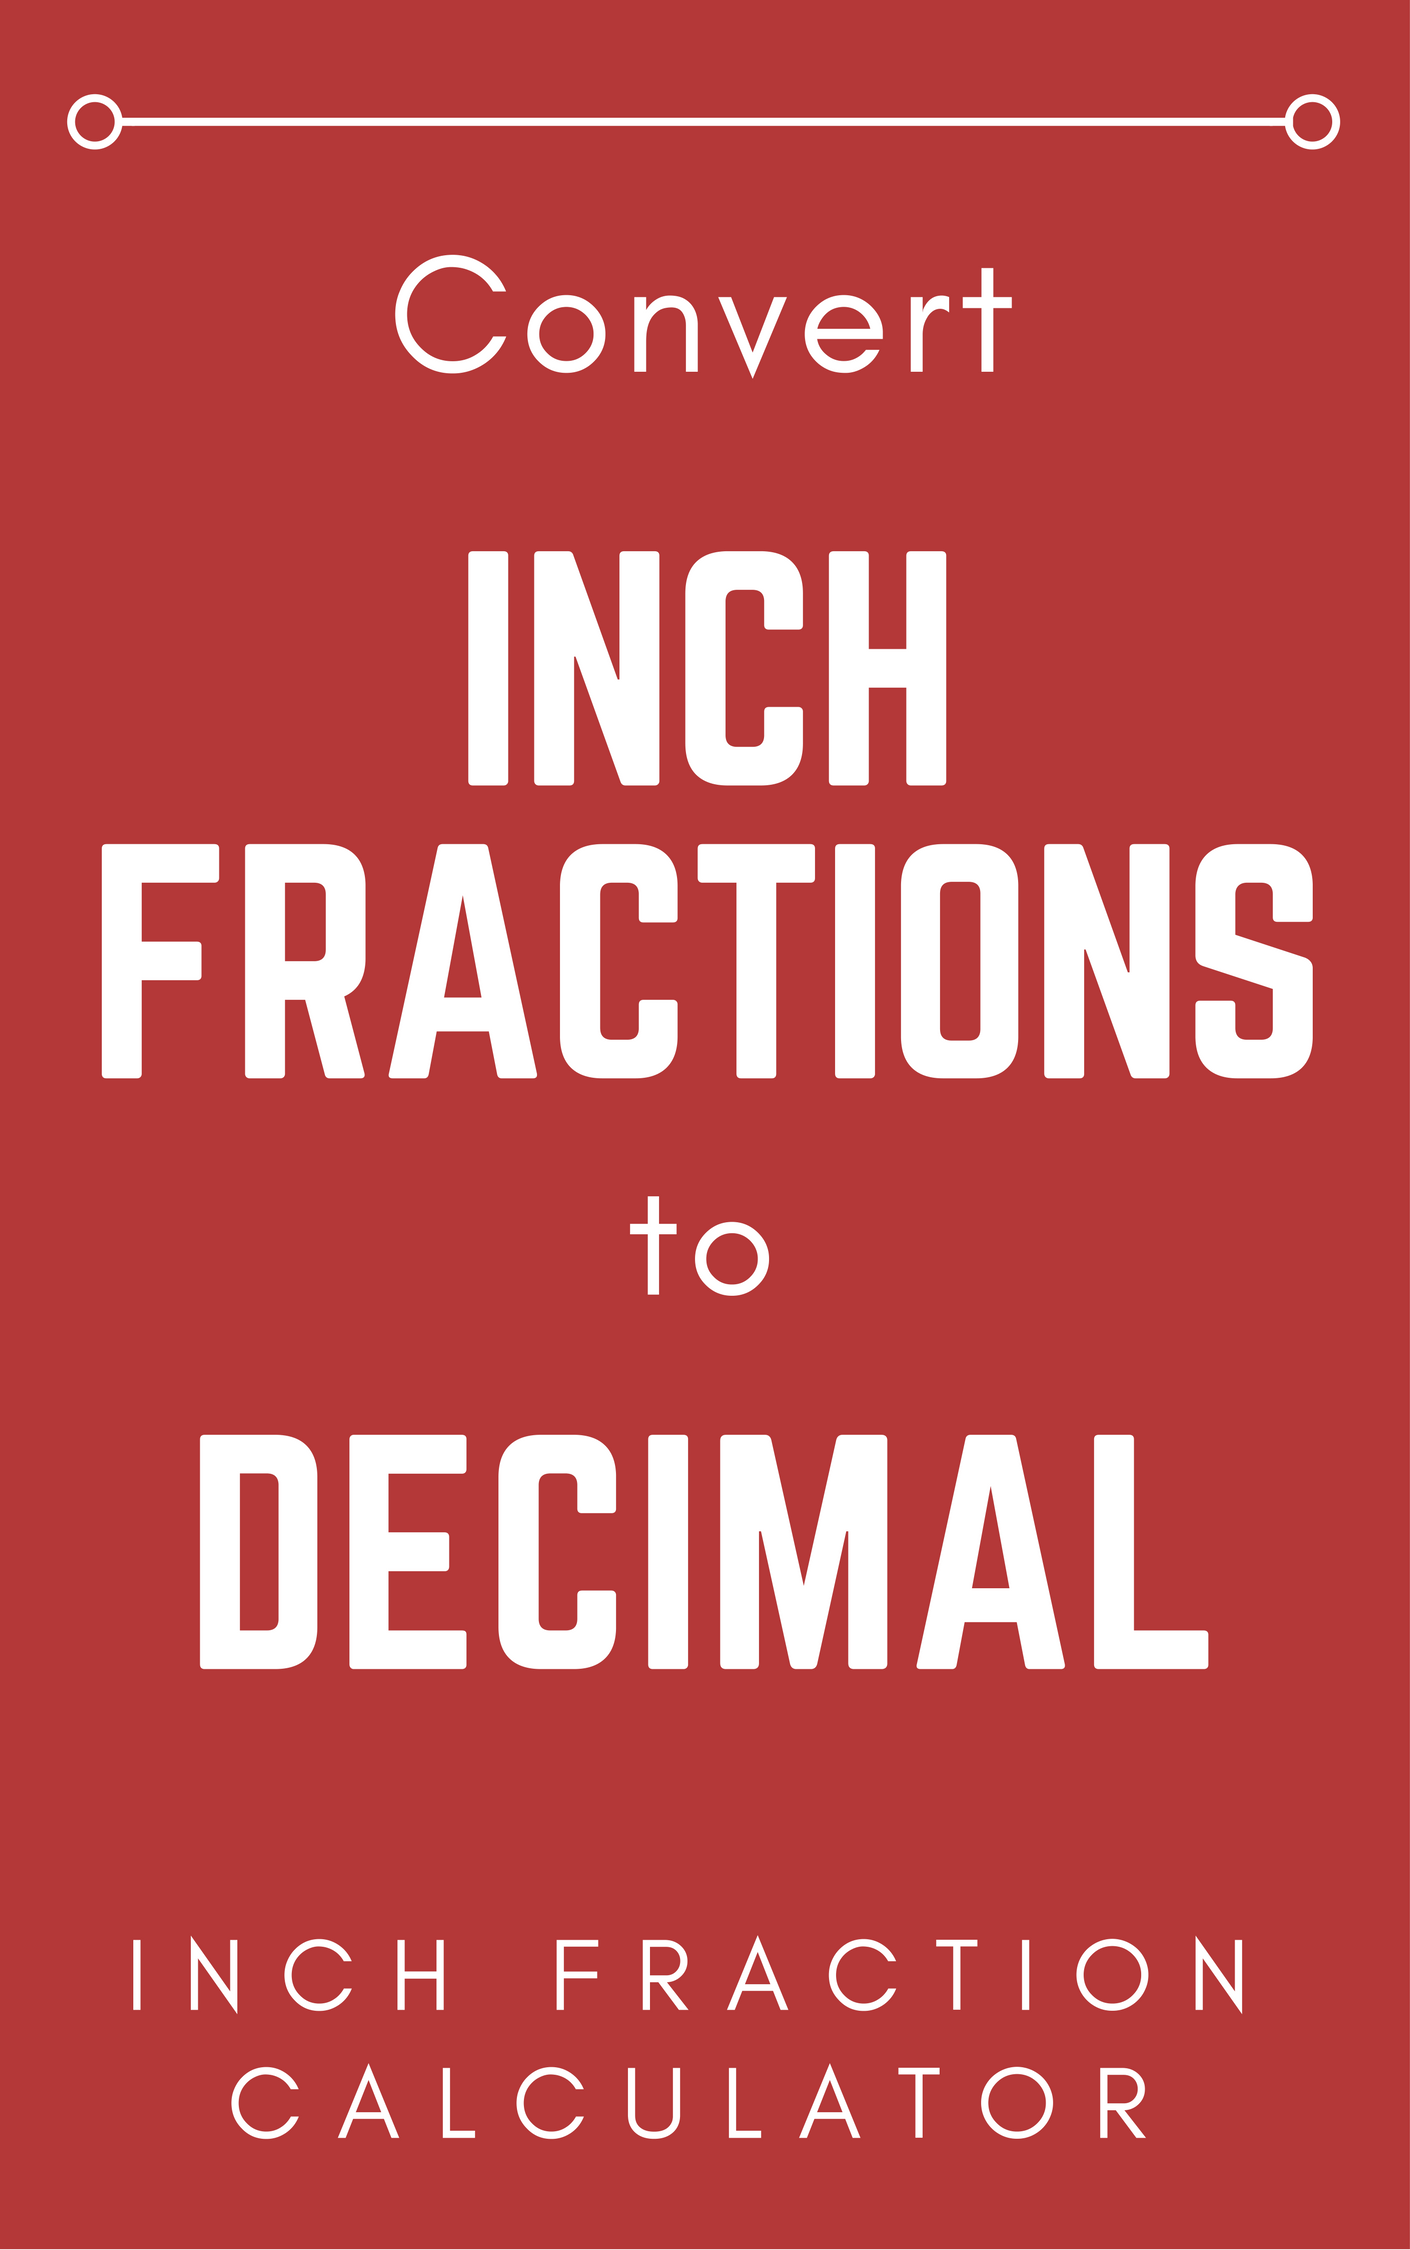 Inch Fraction Calculator